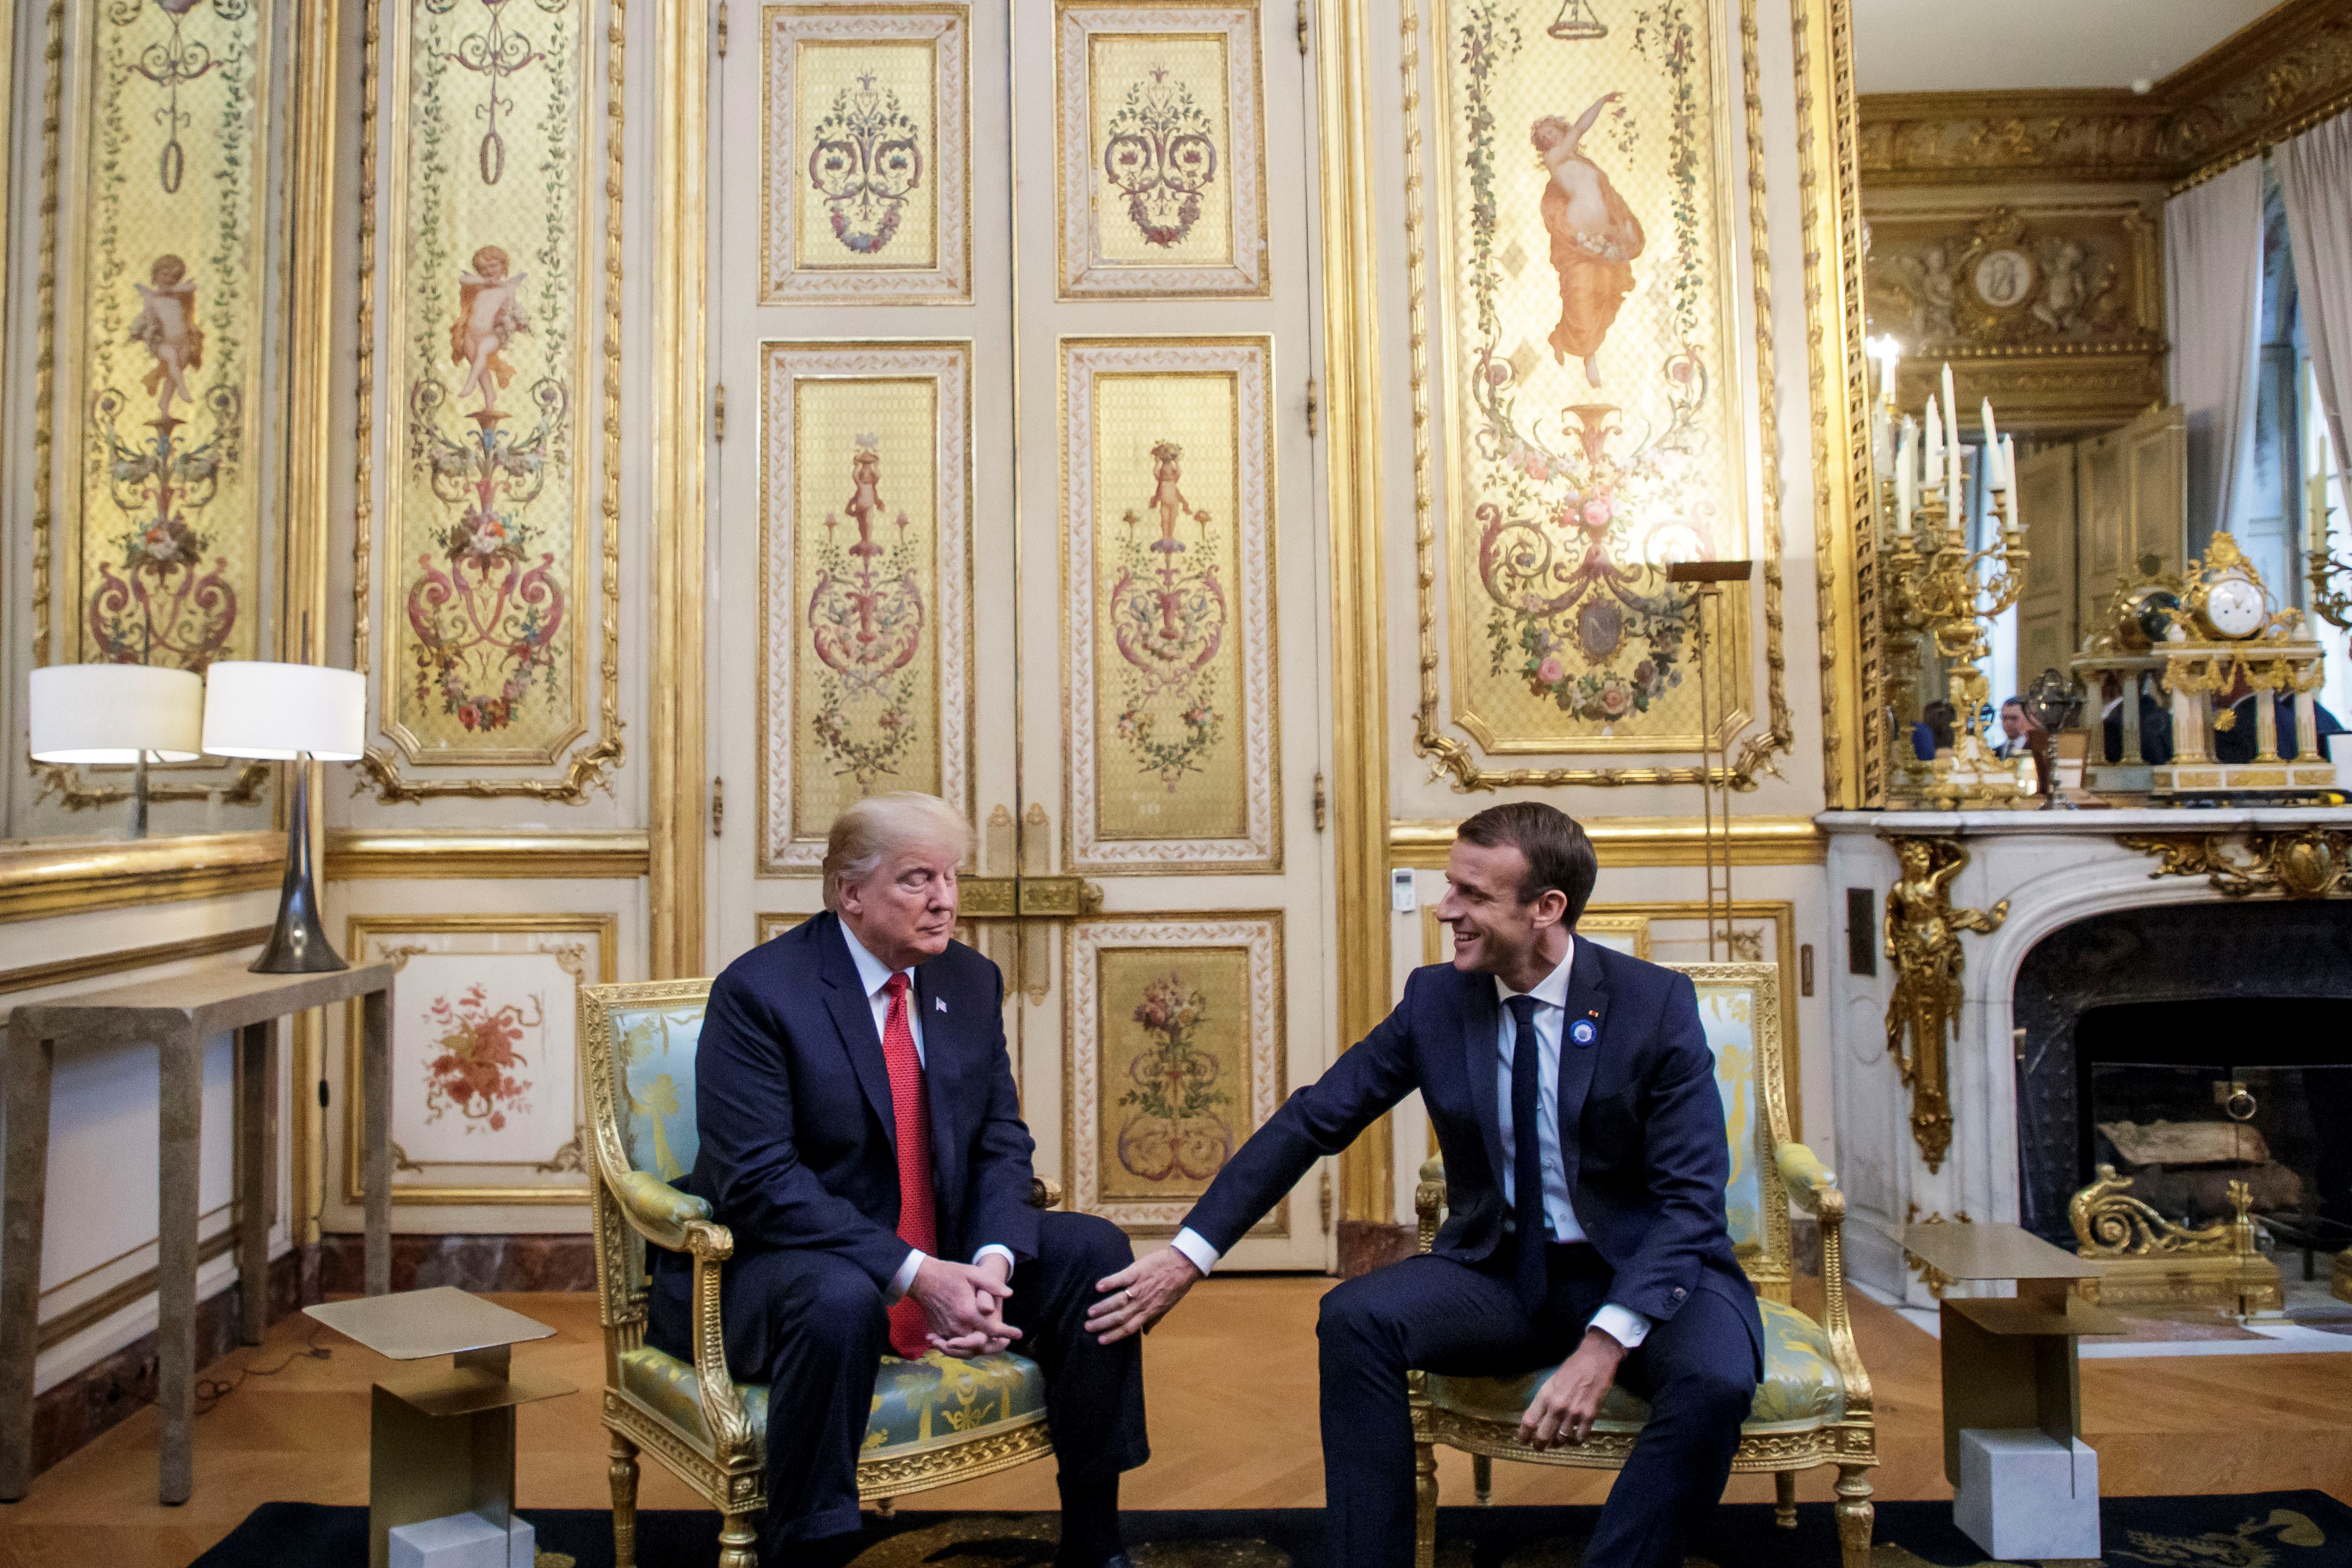 US President Donald Trump (L) speaks with French president Emmanuel Macron prior to their meeting at the Elysee Palace in Paris on November 10, 2018, on the sidelines of commemorations marking the 100th anniversary of the 11 November 1918 armistice, ending World War I. (Photo by Christophe Petit-Tesson / POOL / AFP)